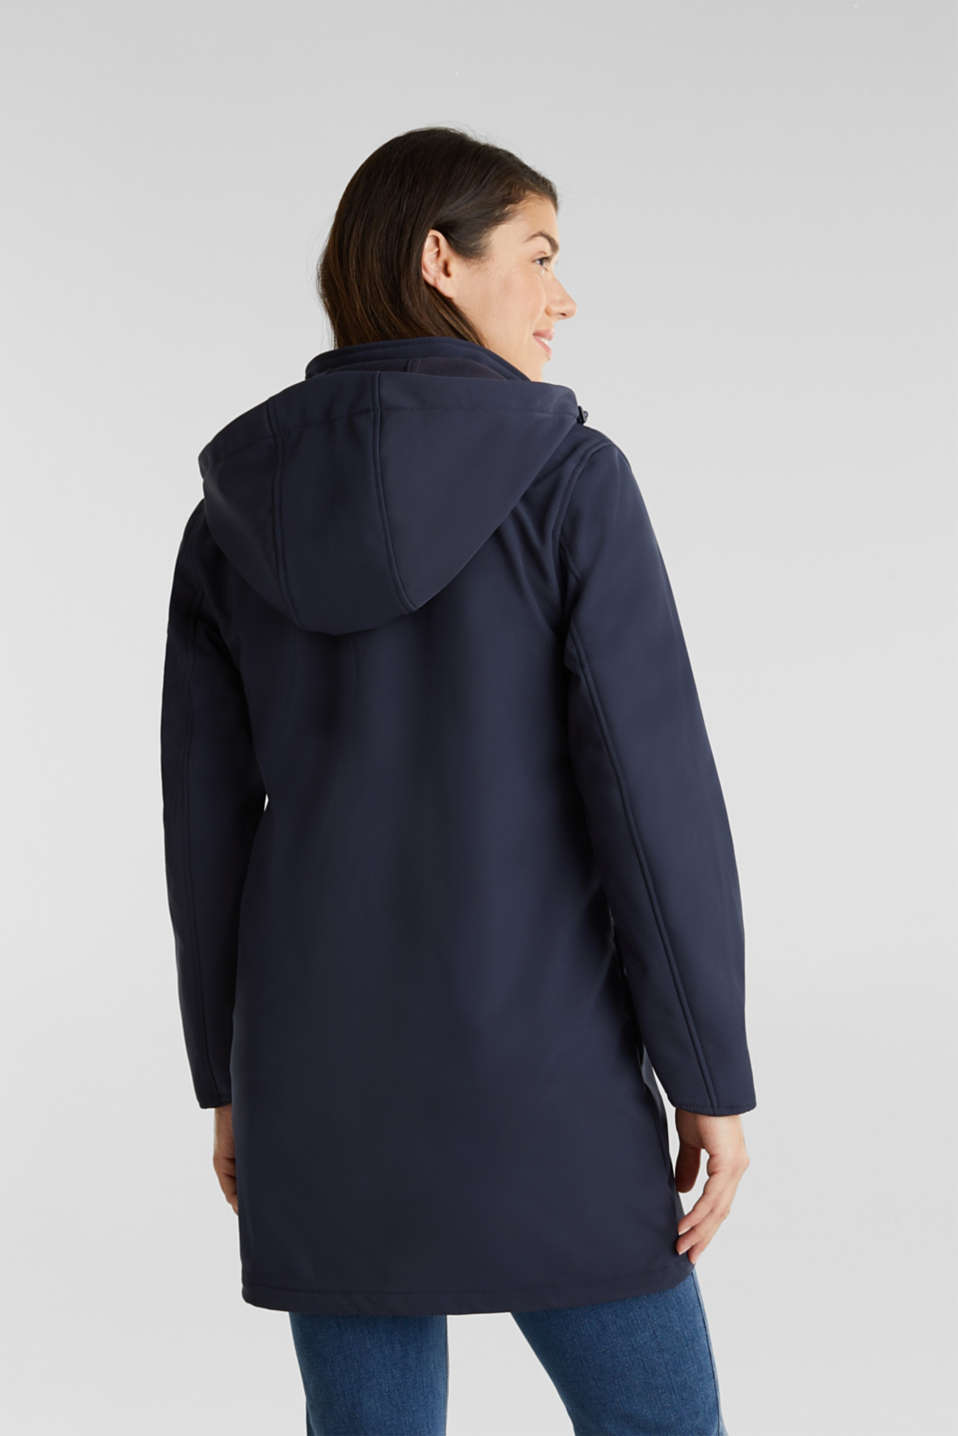 Adjustable three-in-one softshell jacket, LCNIGHT BLUE, detail image number 3